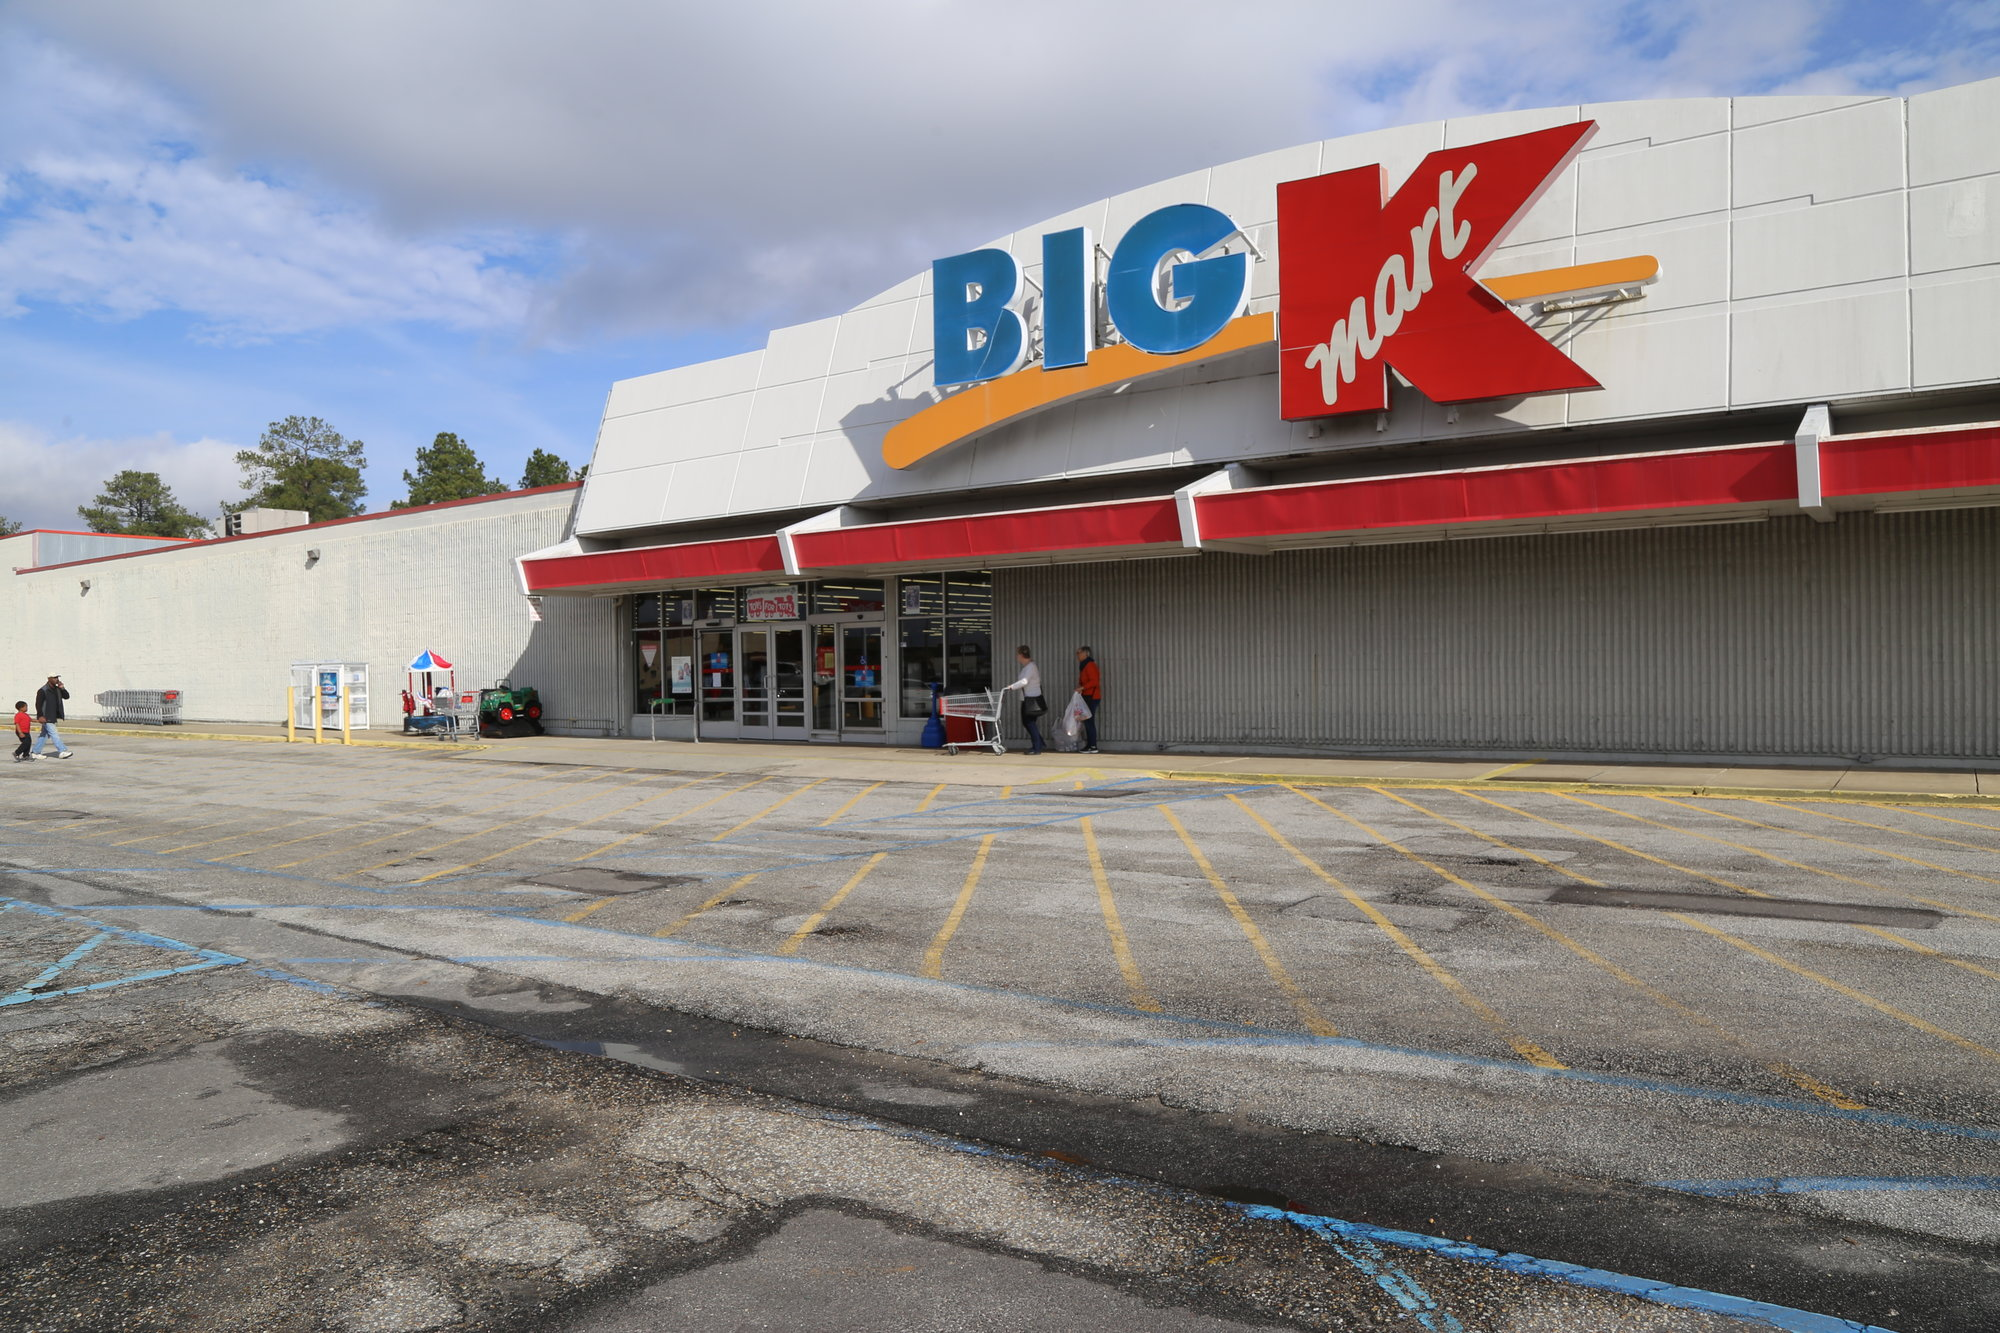 SUMTER ITEM FILE PHOTO Sears Holdings Corp. announced Dec. 27 that Sumter's Kmart, 1143 Broad St., is slated for closure by late March. More will be known on the future of the location after bankruptcy court proceedings for Sears are complete, according to local commercial broker Jay Davis.